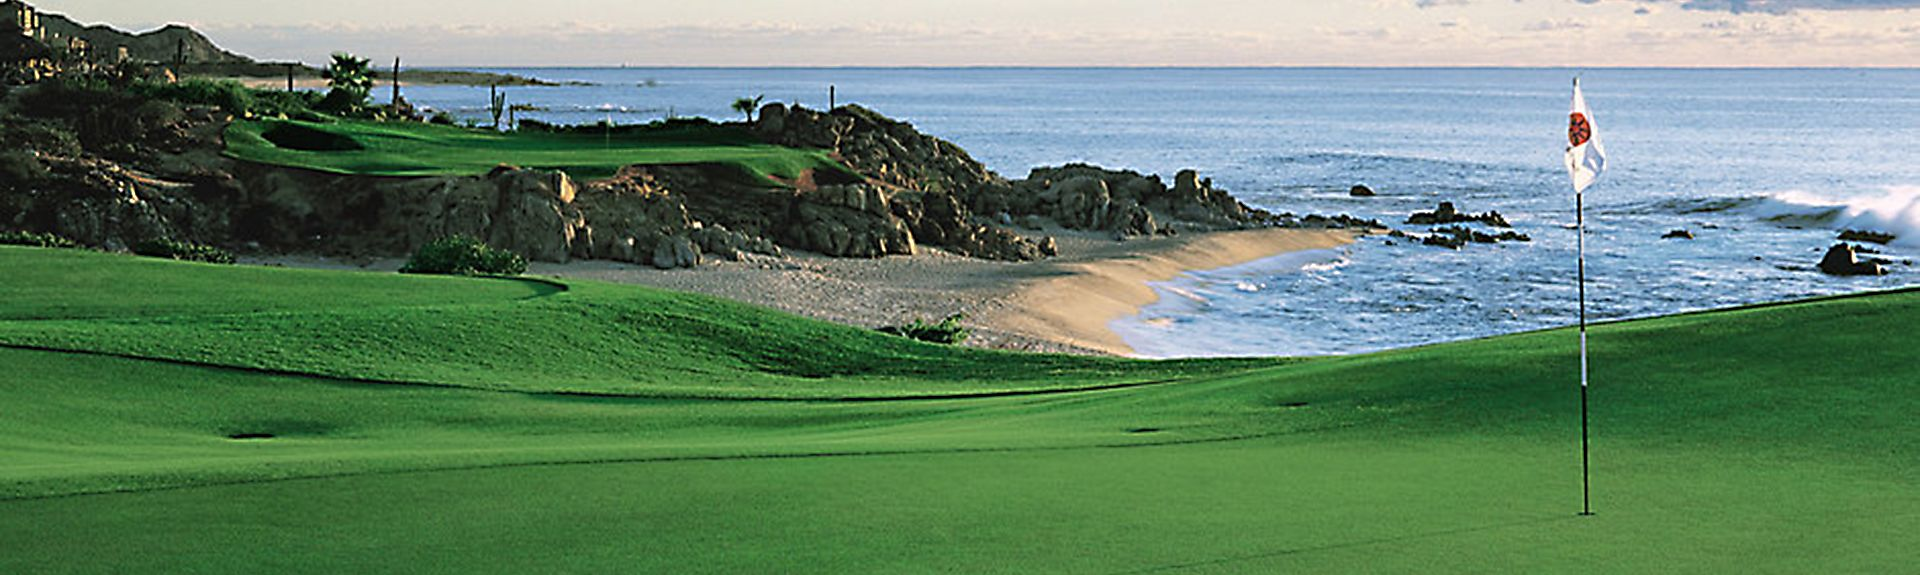 Cabo del Sol Golf Club and Resort (Cabo San Lucas, B.C.S., Μεξικό)